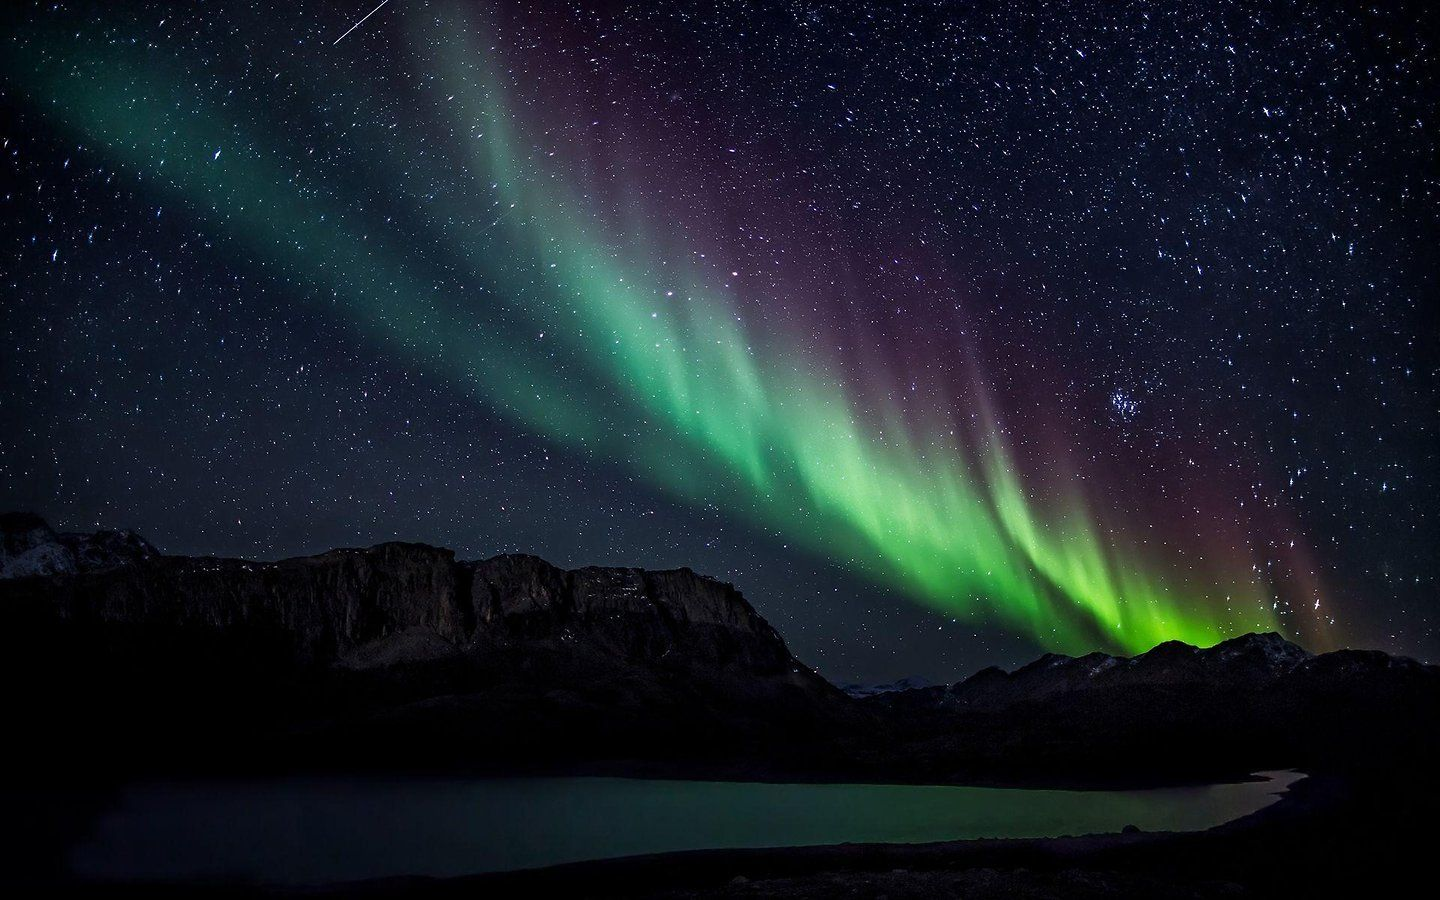 Northern Lights Live Wallpaper Android Apps on Google